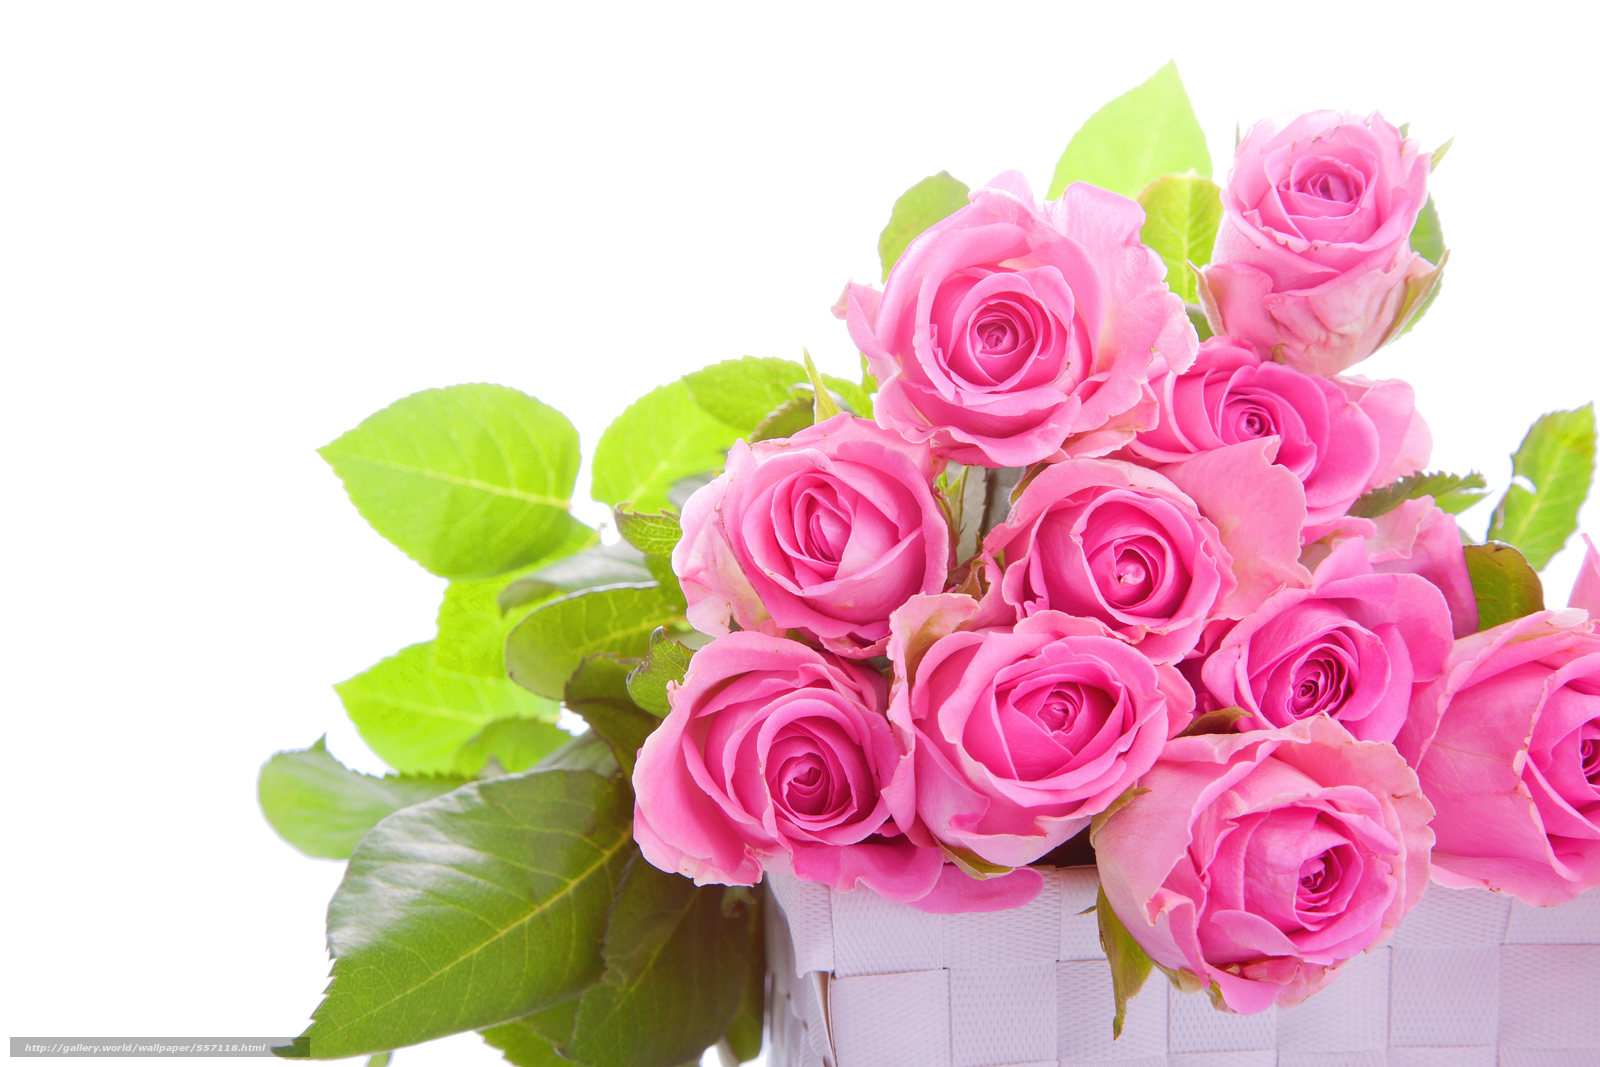 nature, flowers, Flower, basket, Pink, roses